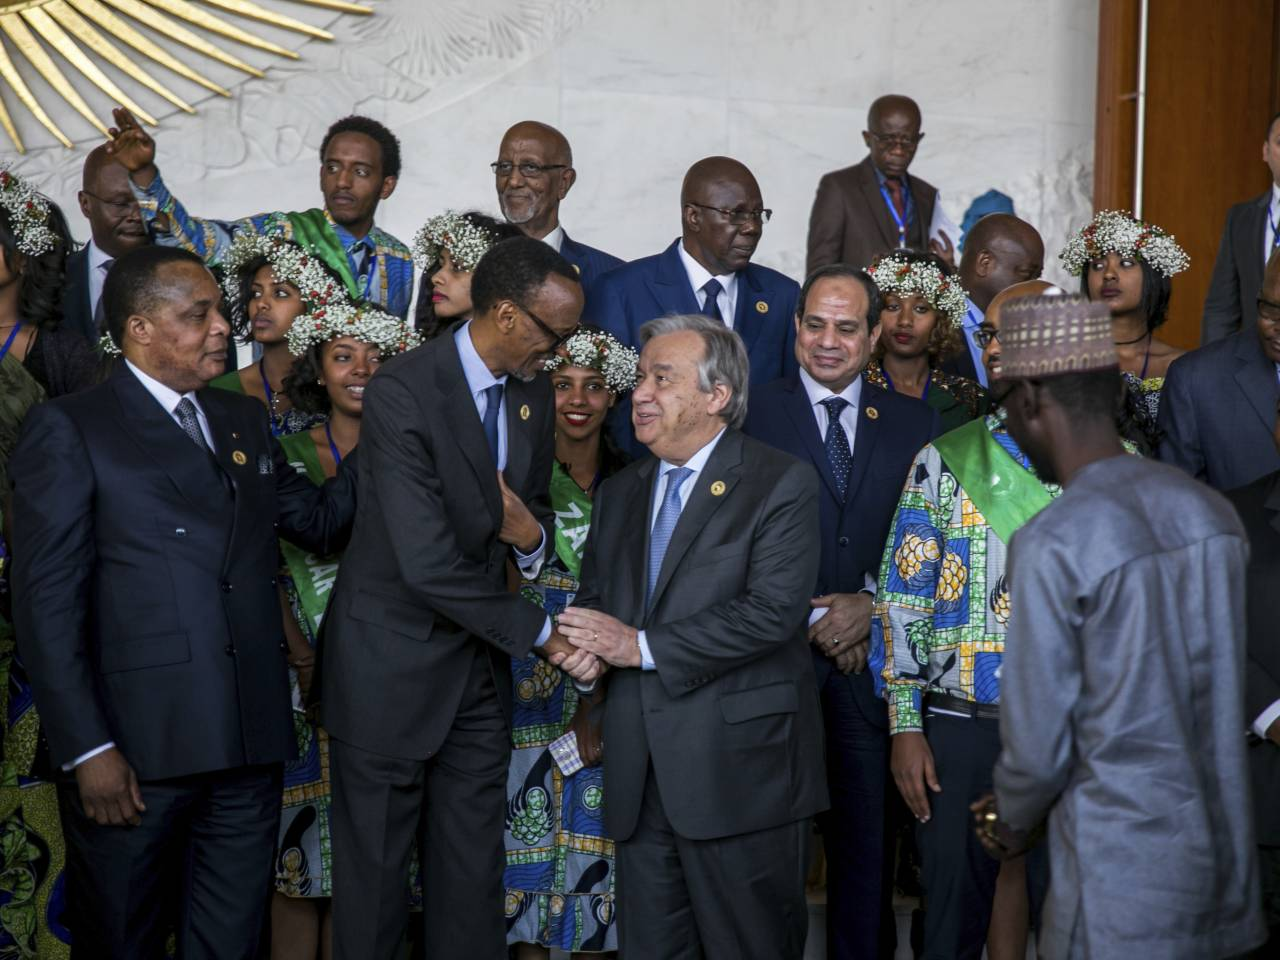 Uhuru in Ethiopia for Amina's African chair post vote